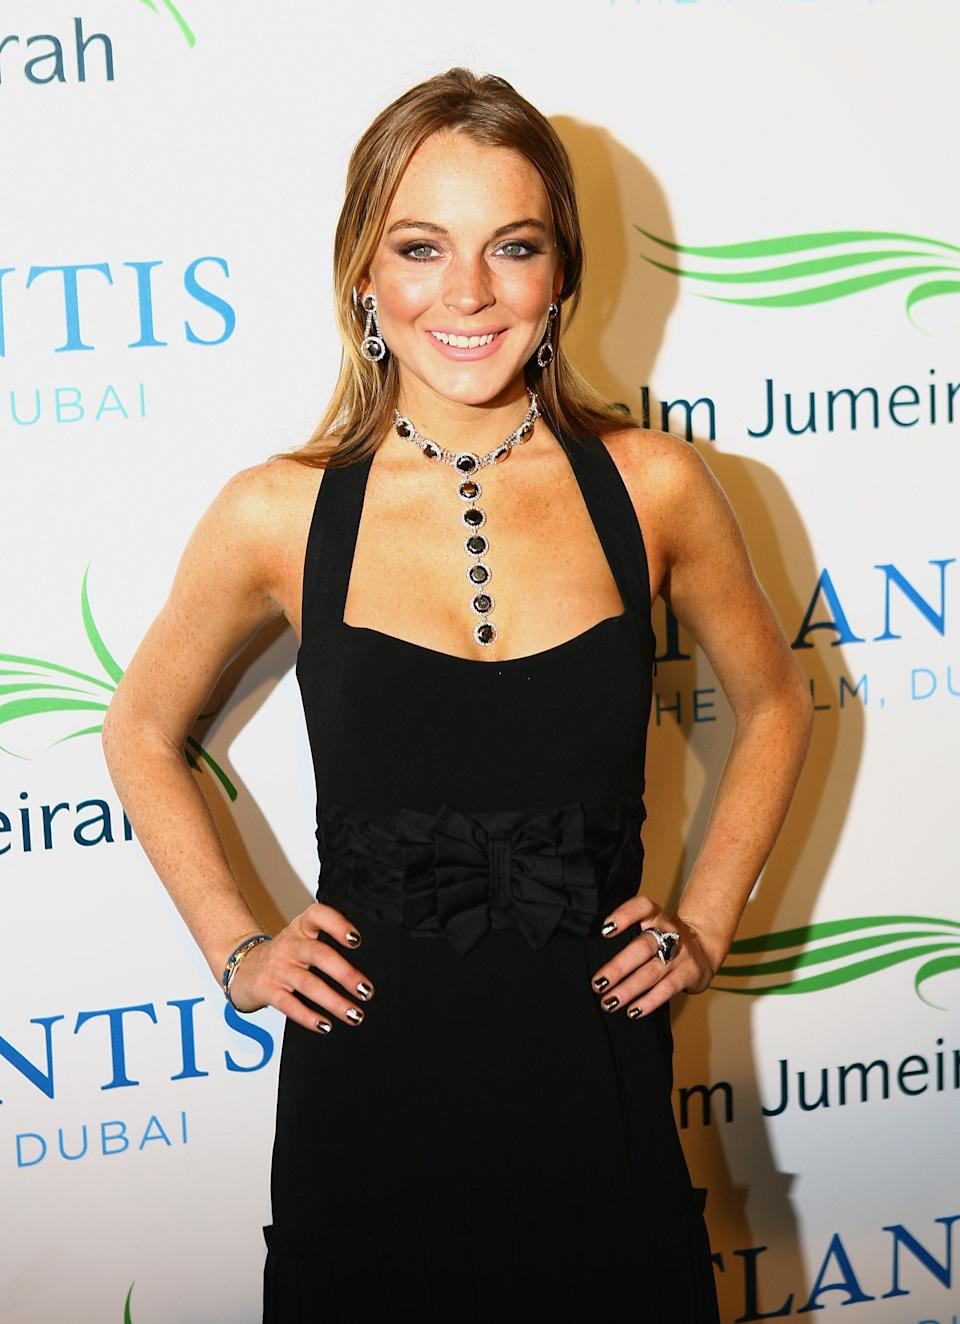 Lindsay Lohan poses at an event